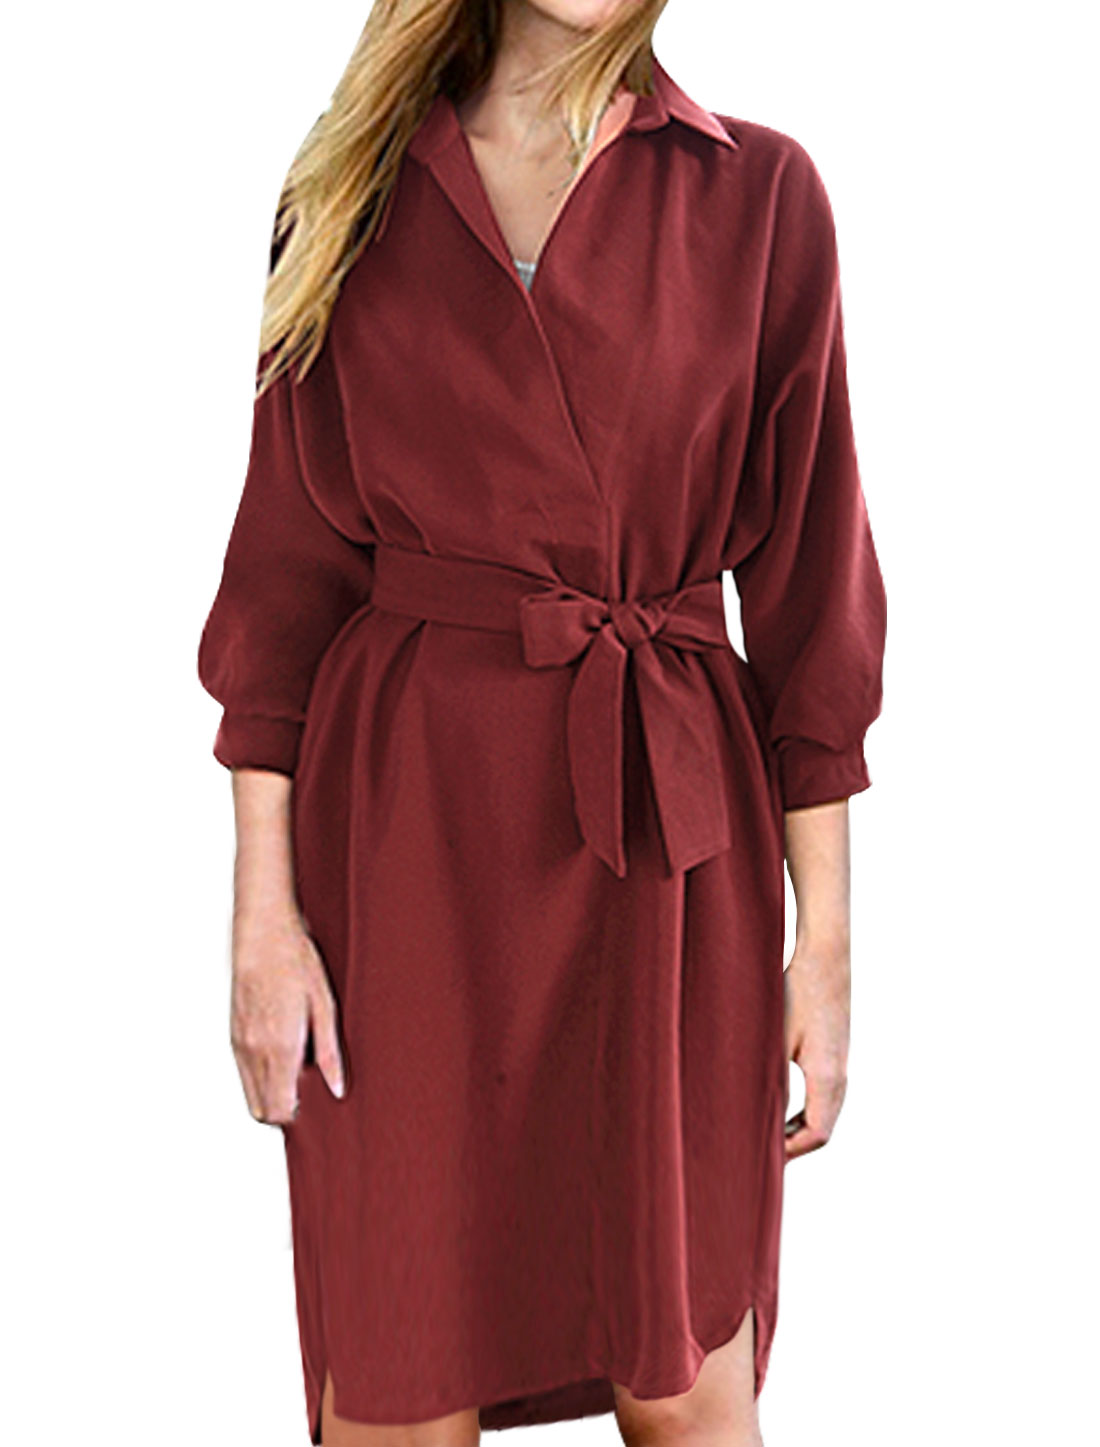 Women Collared Wrap Design Waist String Loose Tunic Dress Red S